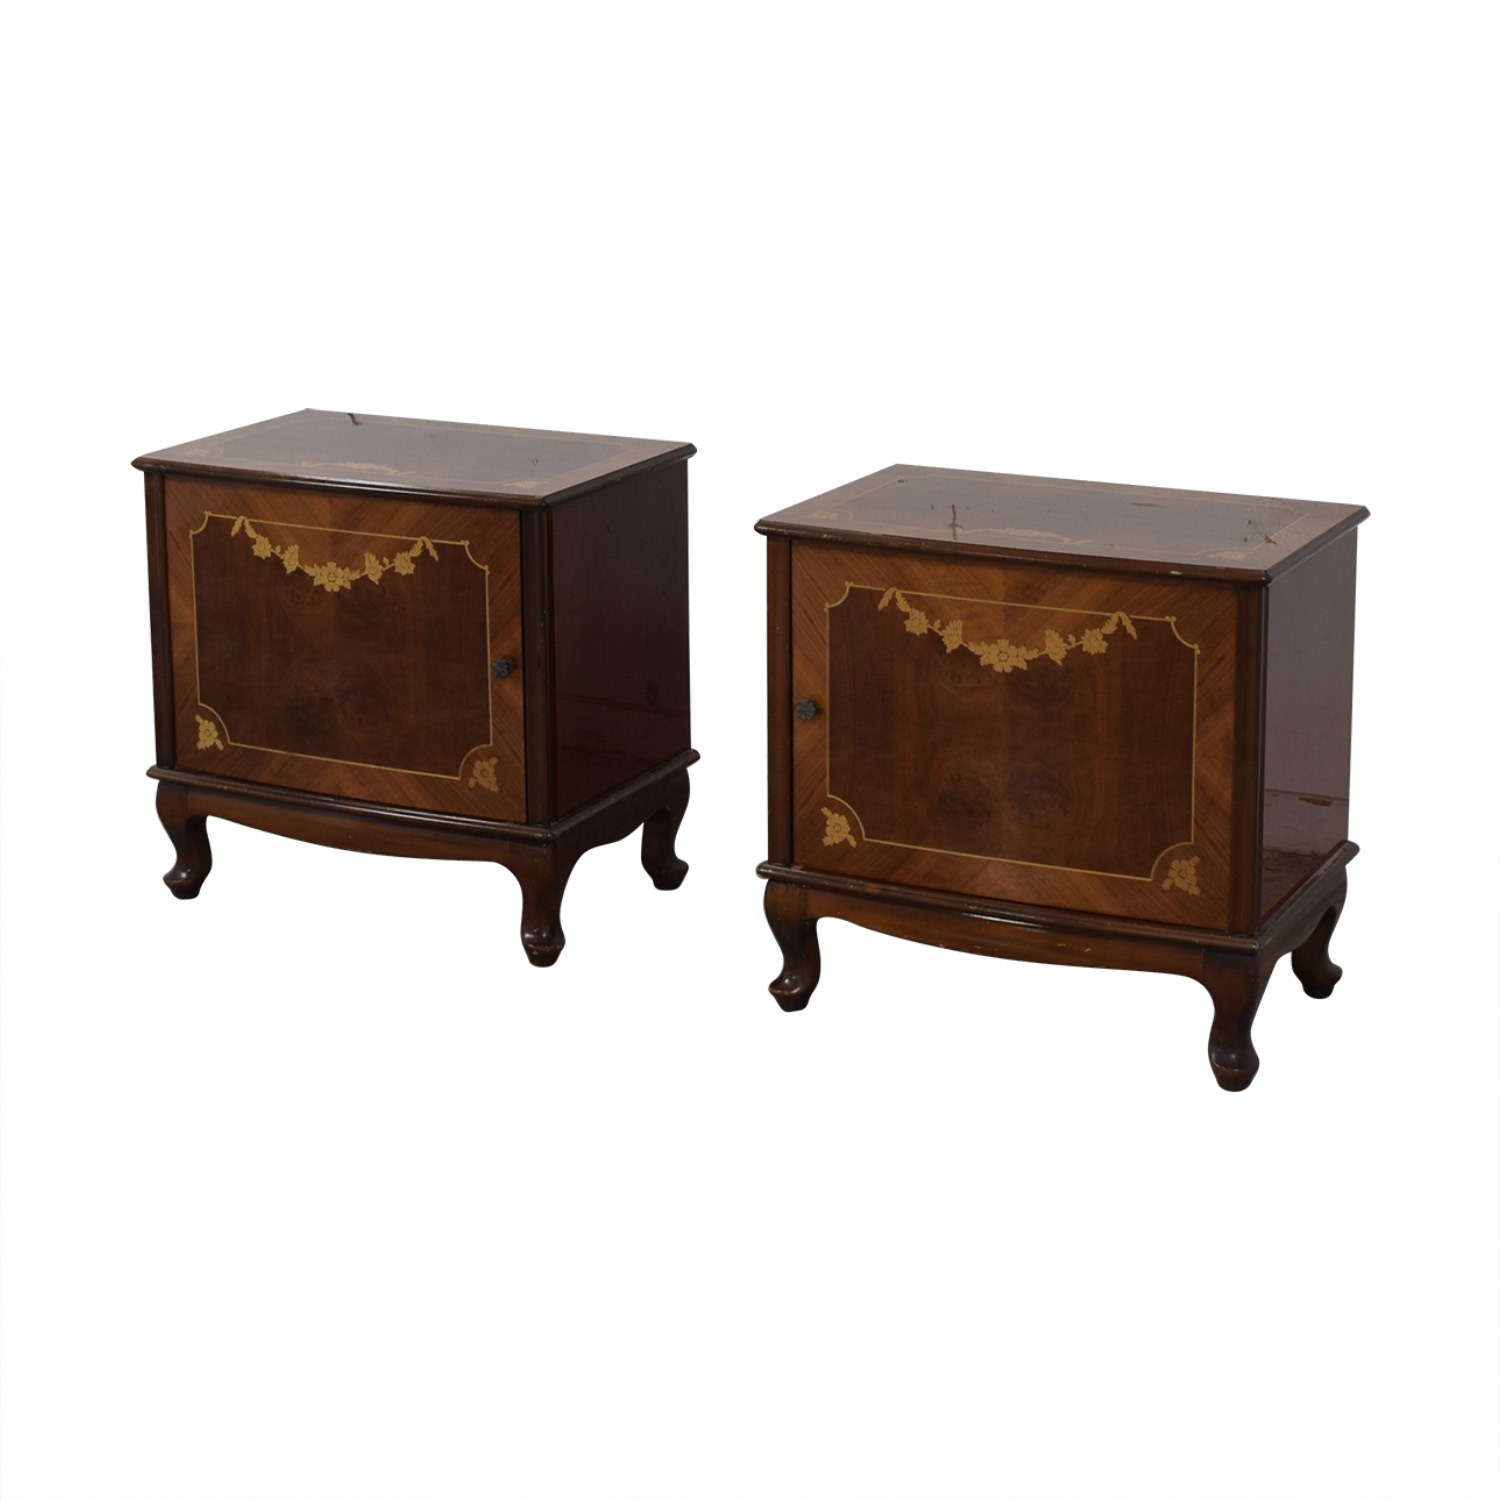 buy  Roma Furniture Nighstands online